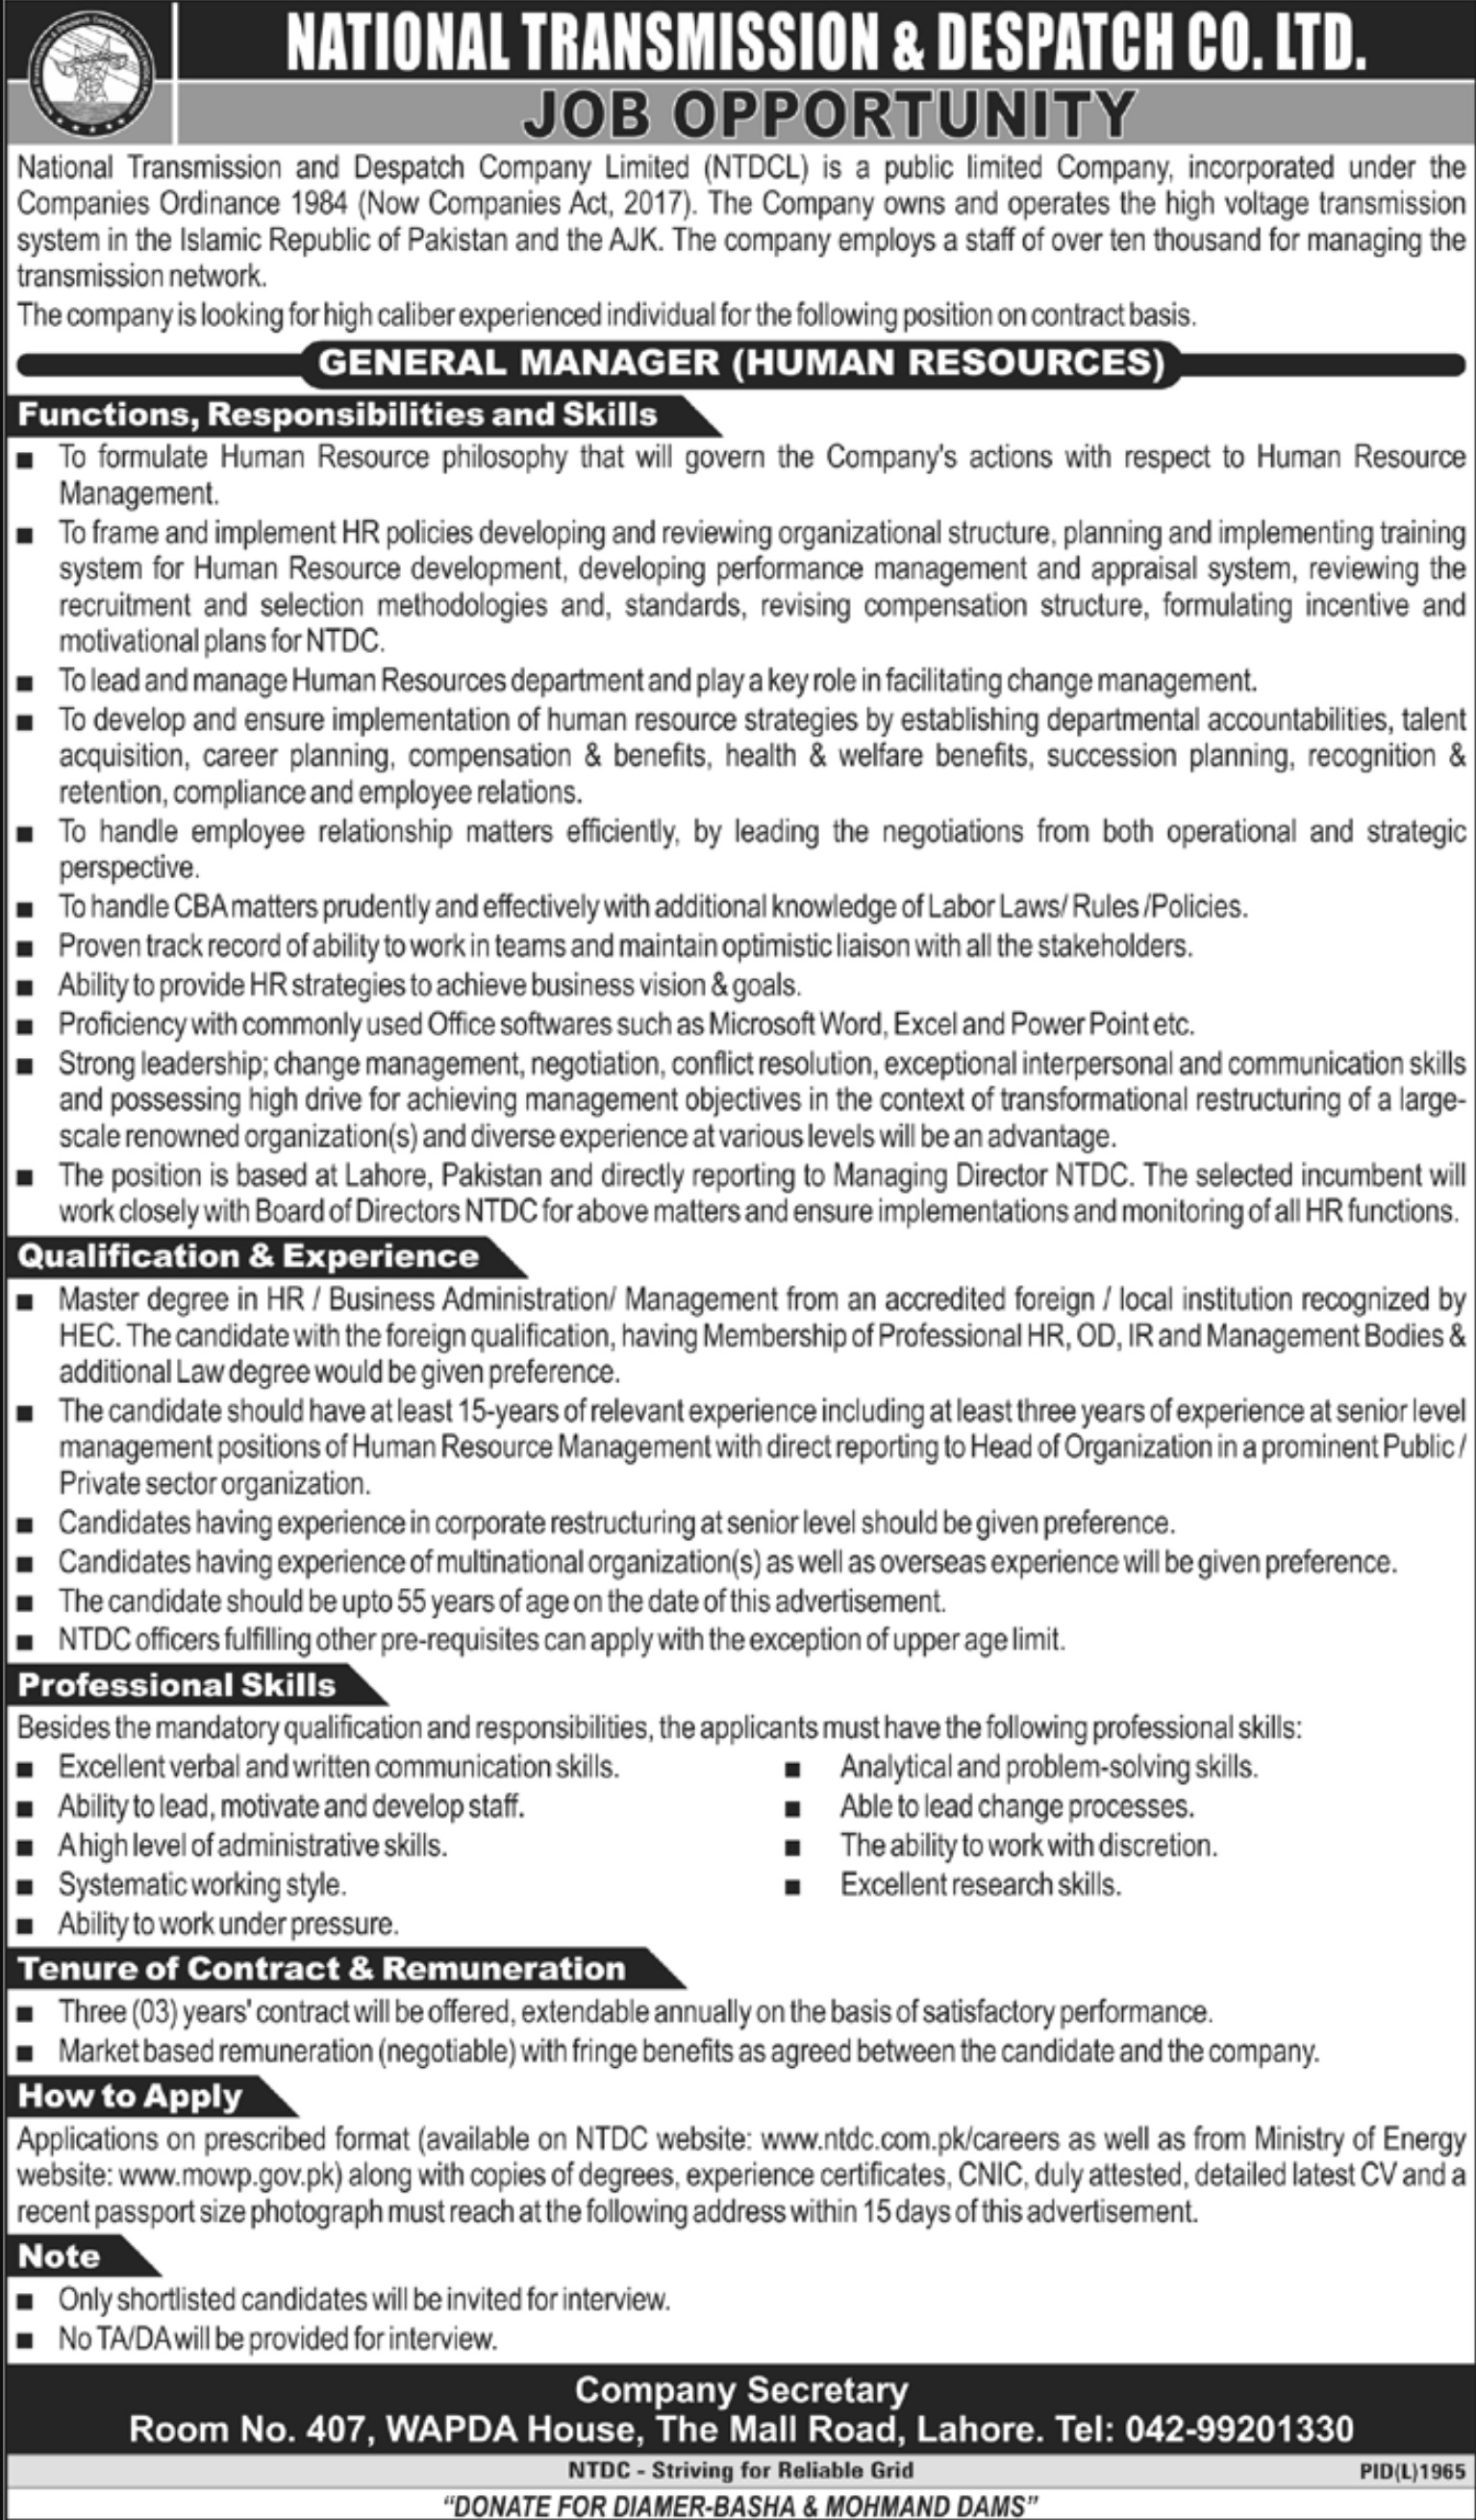 NTDC Wapda Jobs 2020 National Transmission & Despatch Co. Ltd